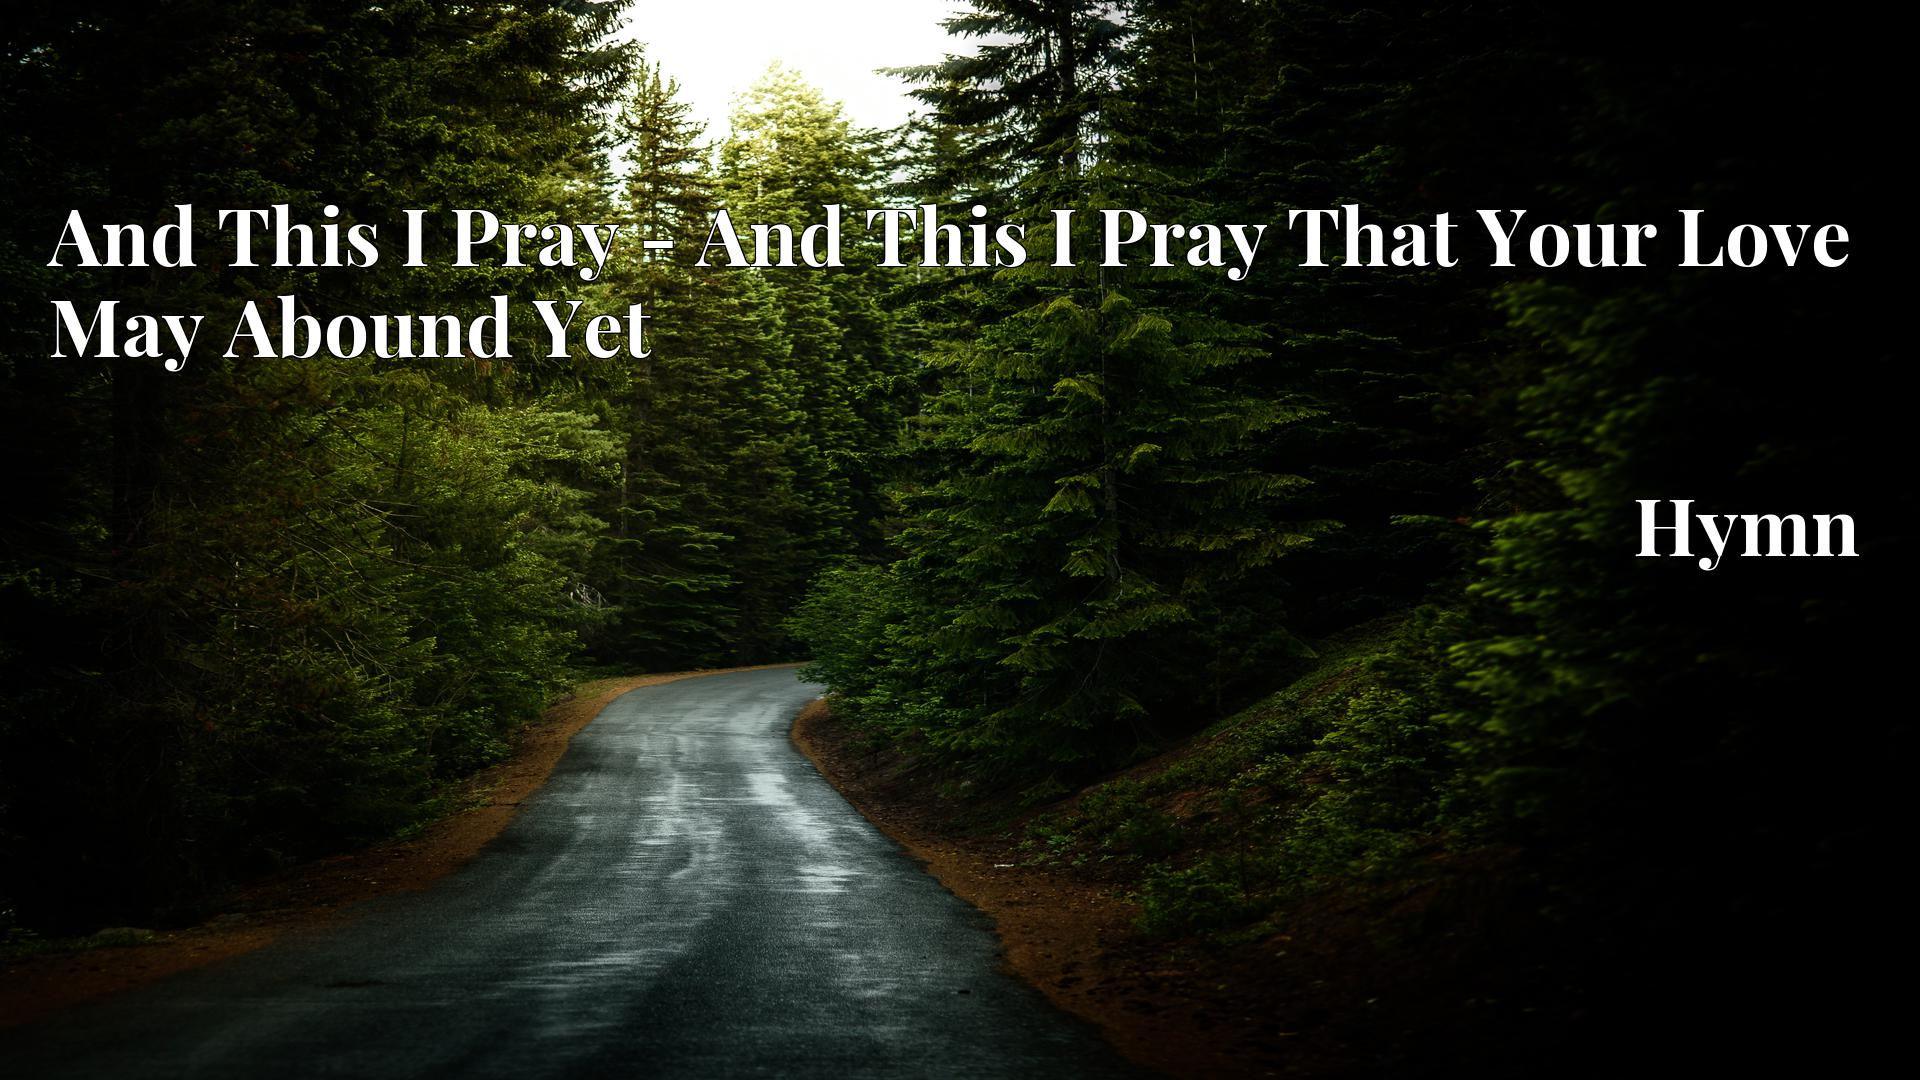 And This I Pray - And This I Pray That Your Love May Abound Yet - Hymn